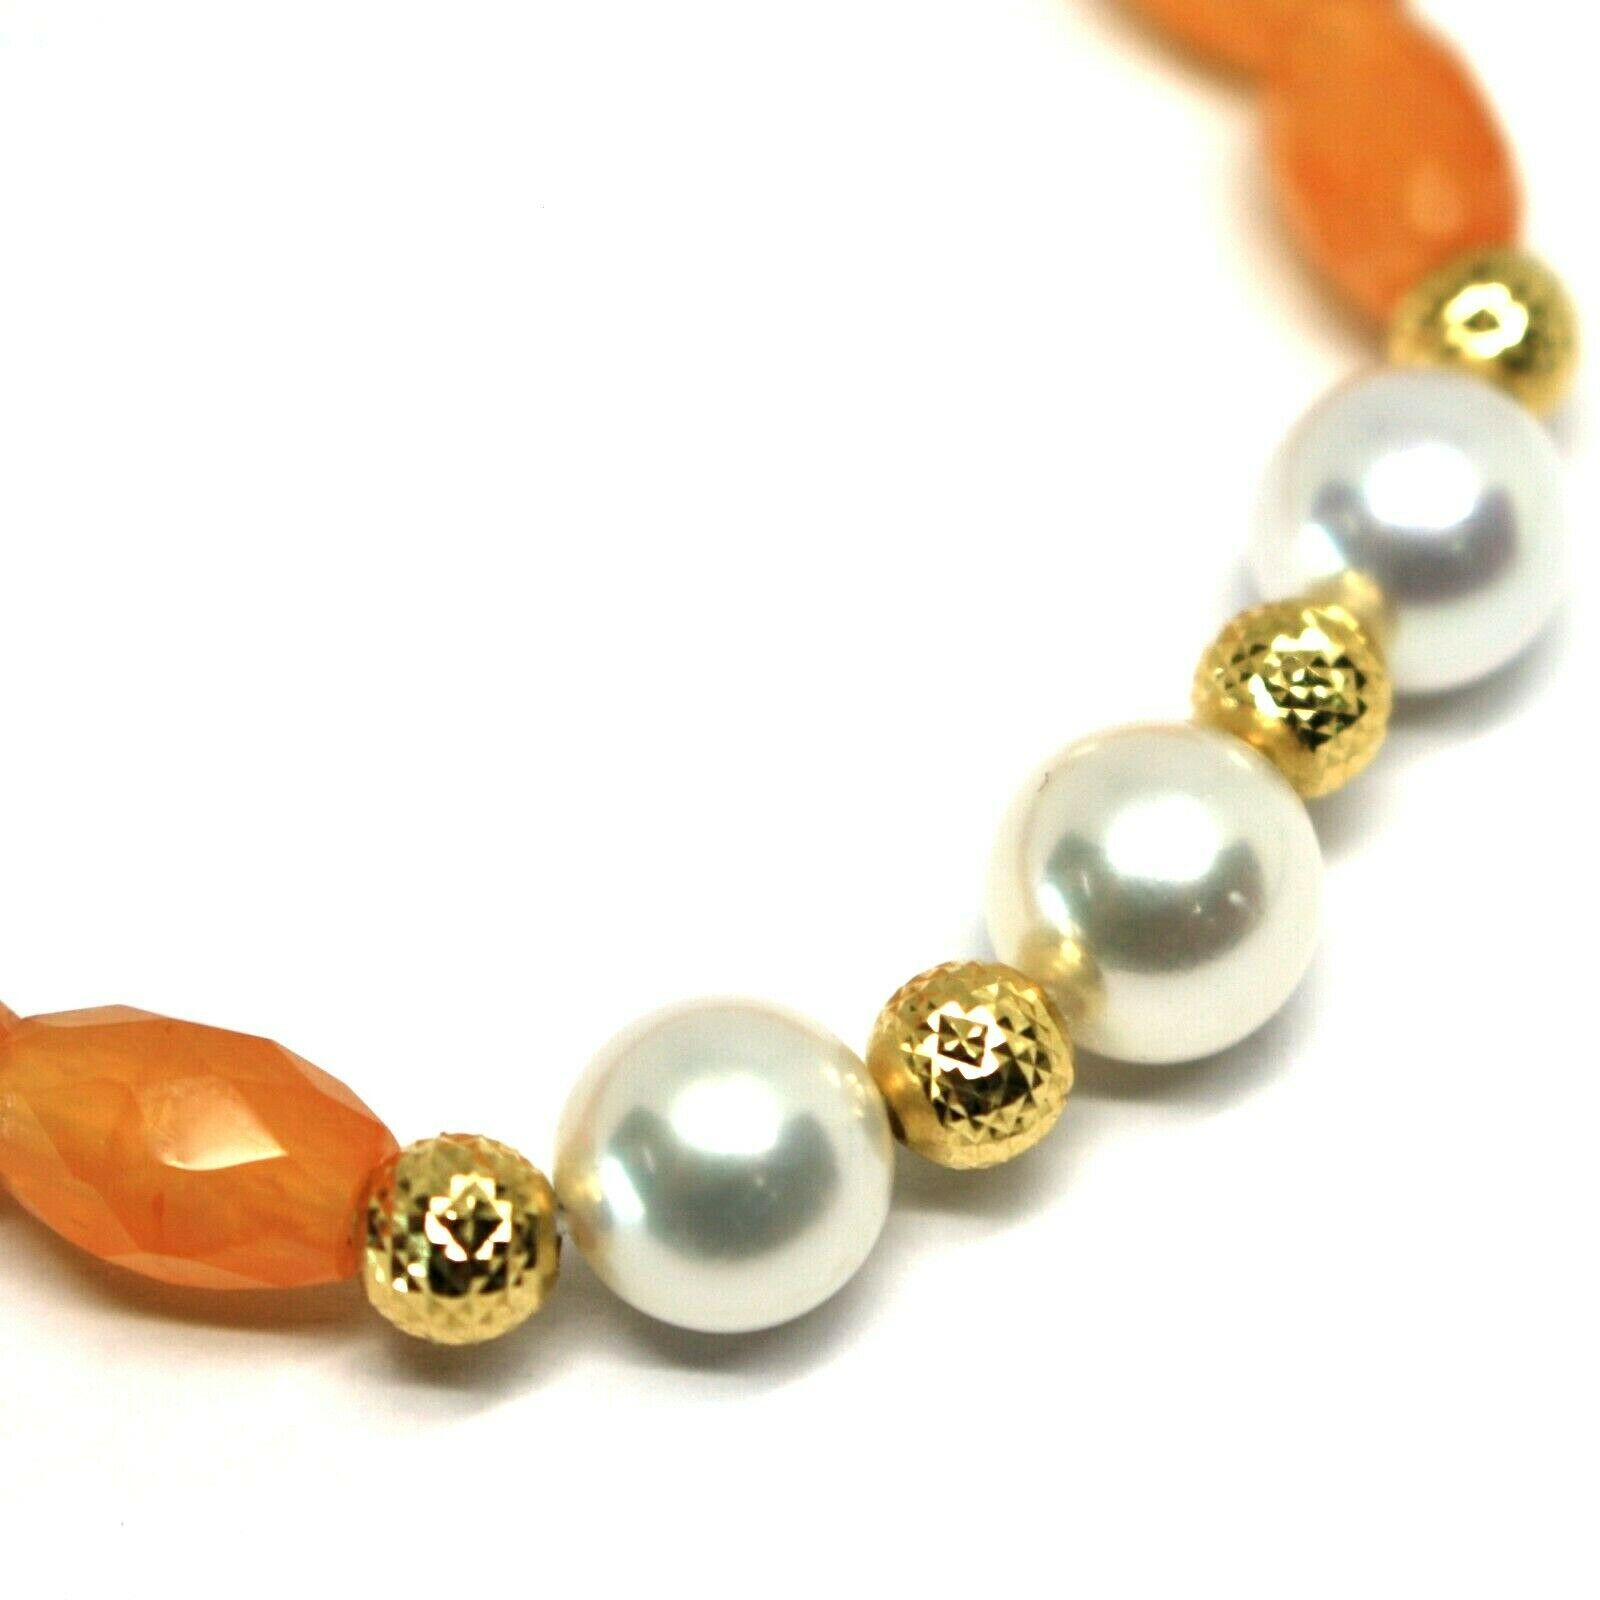 Bracelet Yellow Gold 18K 750 Jade and Carnelian Oval Faceted,Bead,Ball Pattern~